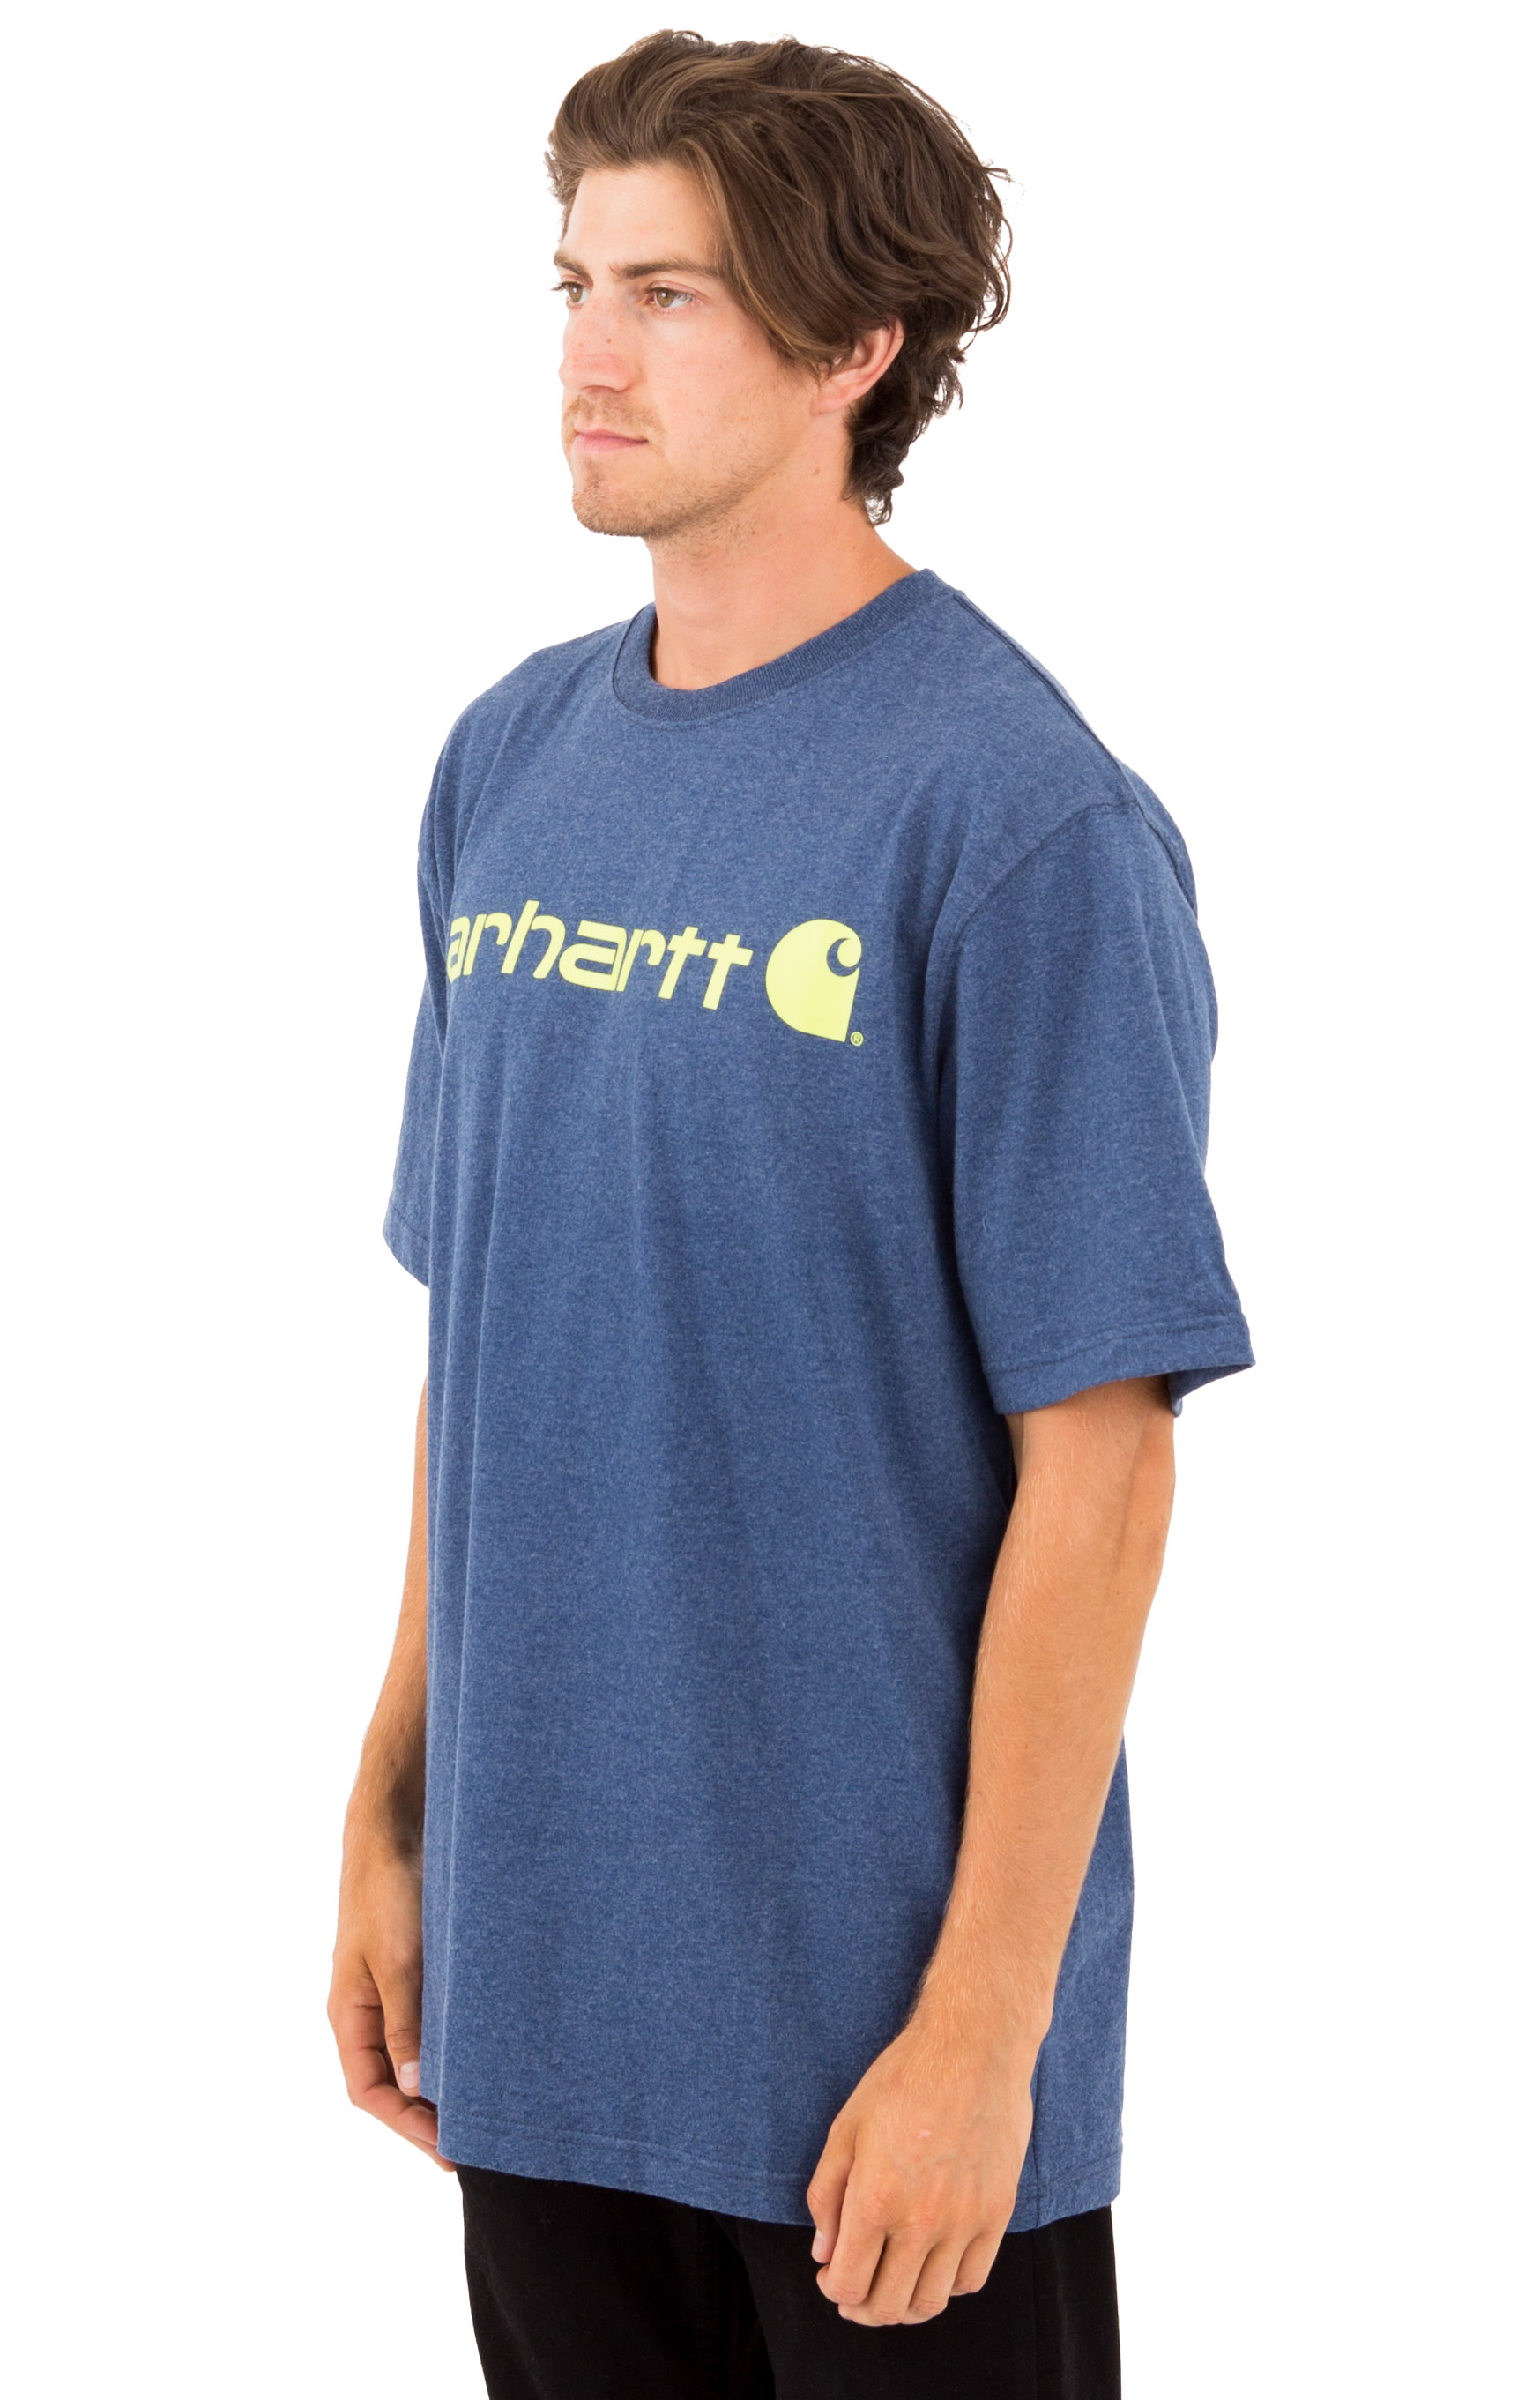 (K195) S/S Signature Logo T-Shirt - Dark Cobalt Blue Heather 2